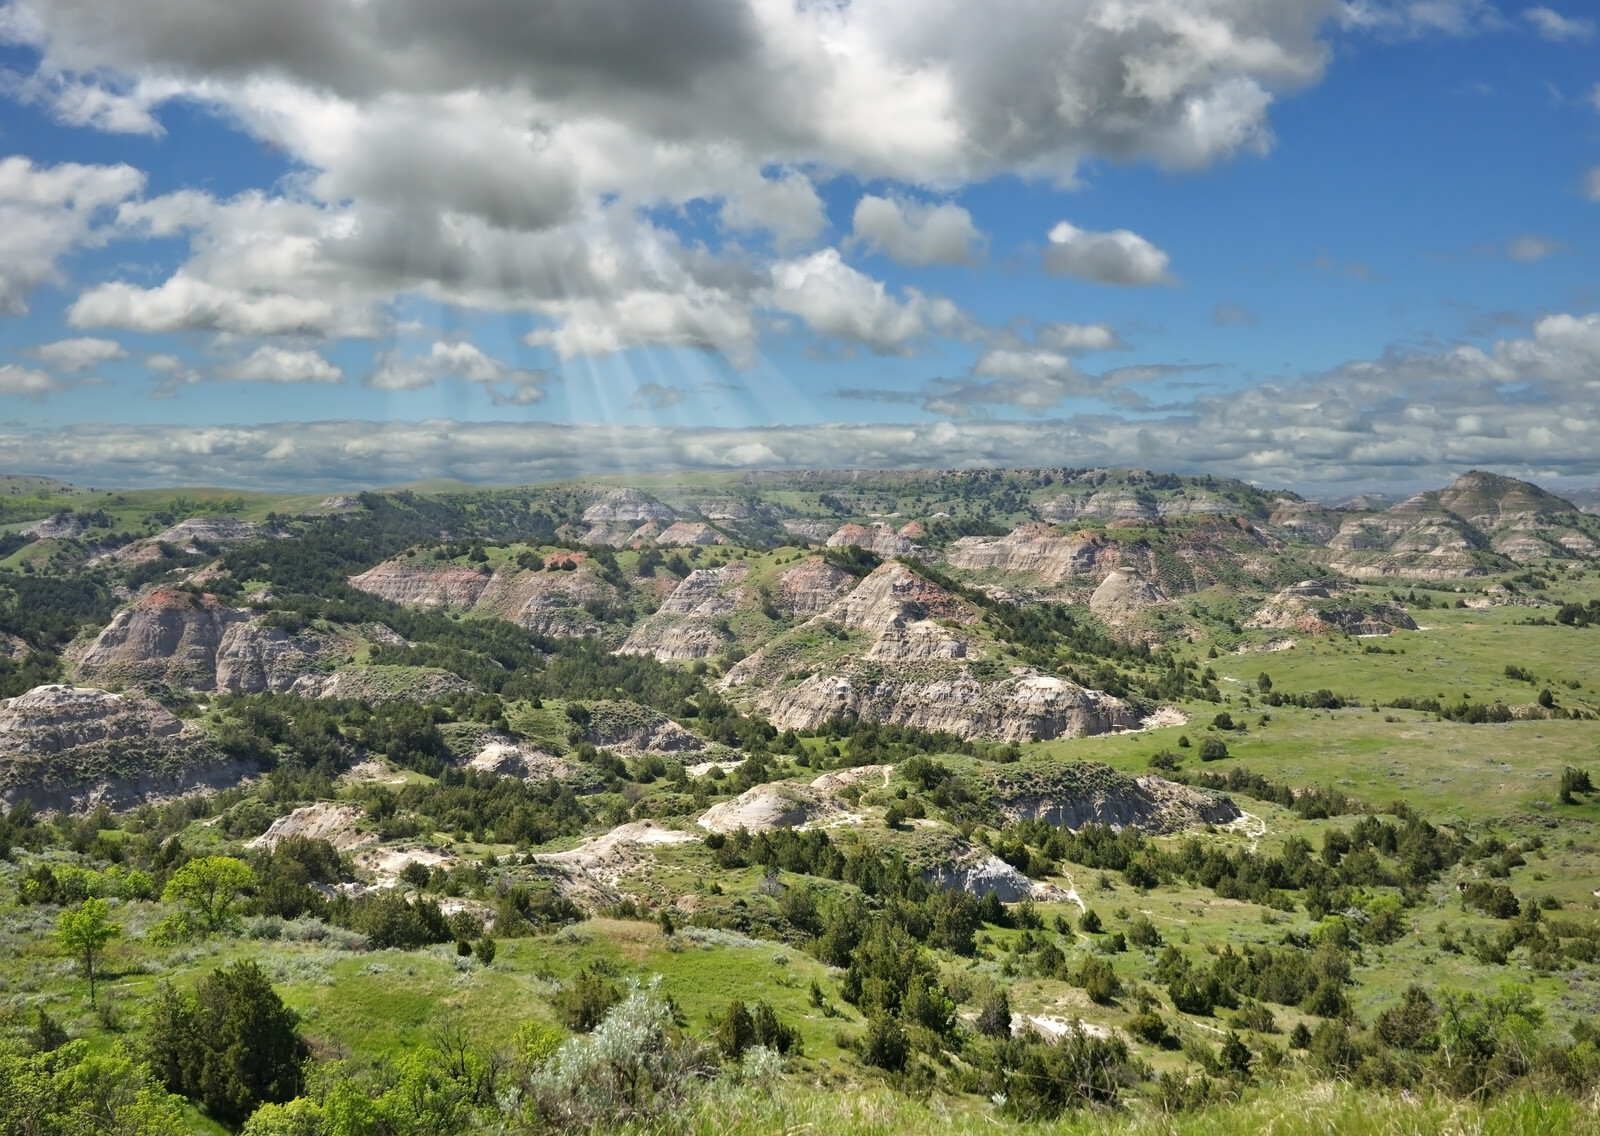 Best Places to retire in North Dakota - Summer mountain landscape of painted canyon in north dakota with blue skies and puffy white clouds, with sun beams shining down on the mountain tops